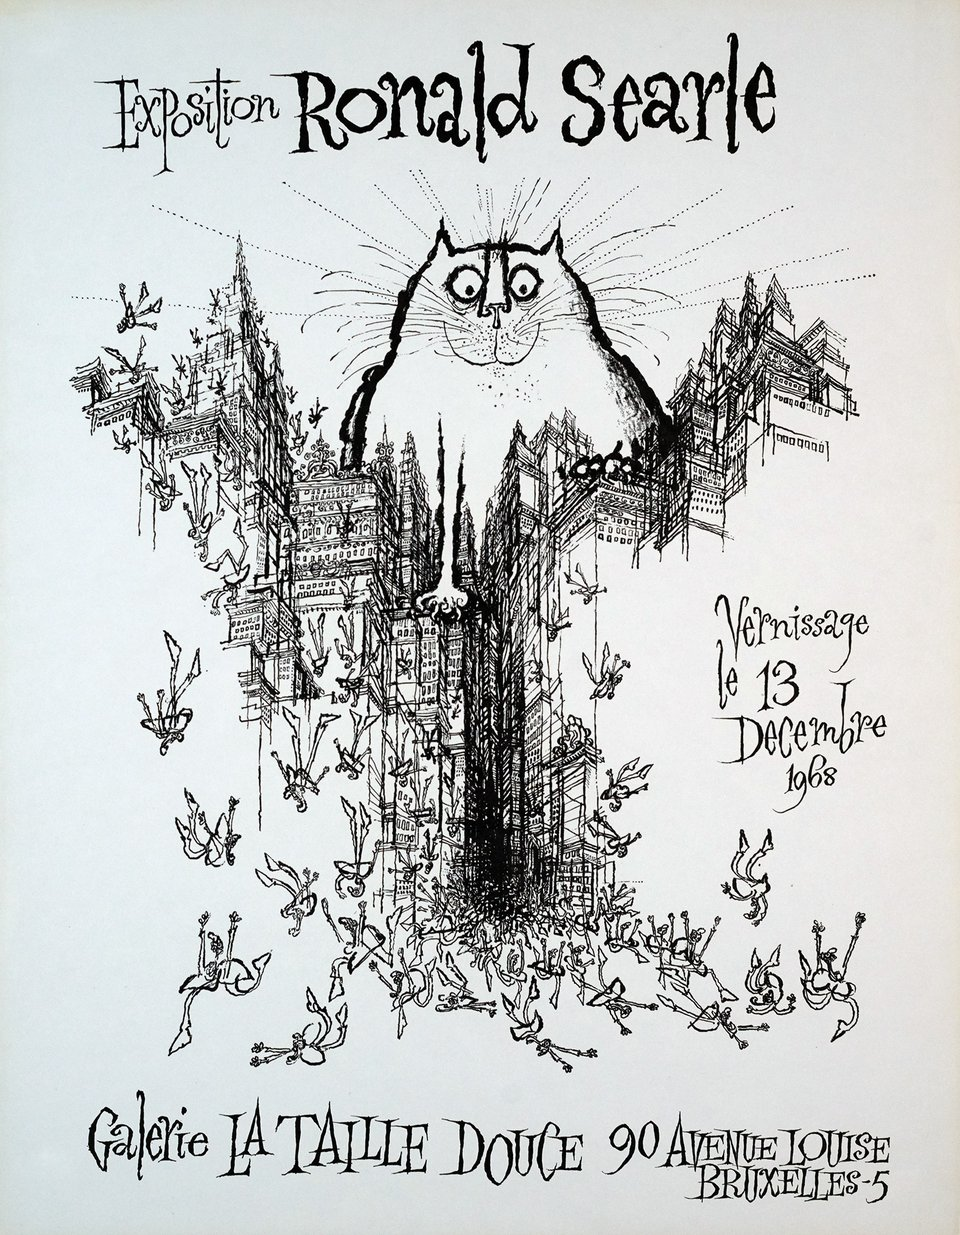 Exposition Ronald Searle – Affiche ancienne – Ronald SEARLE – 1968